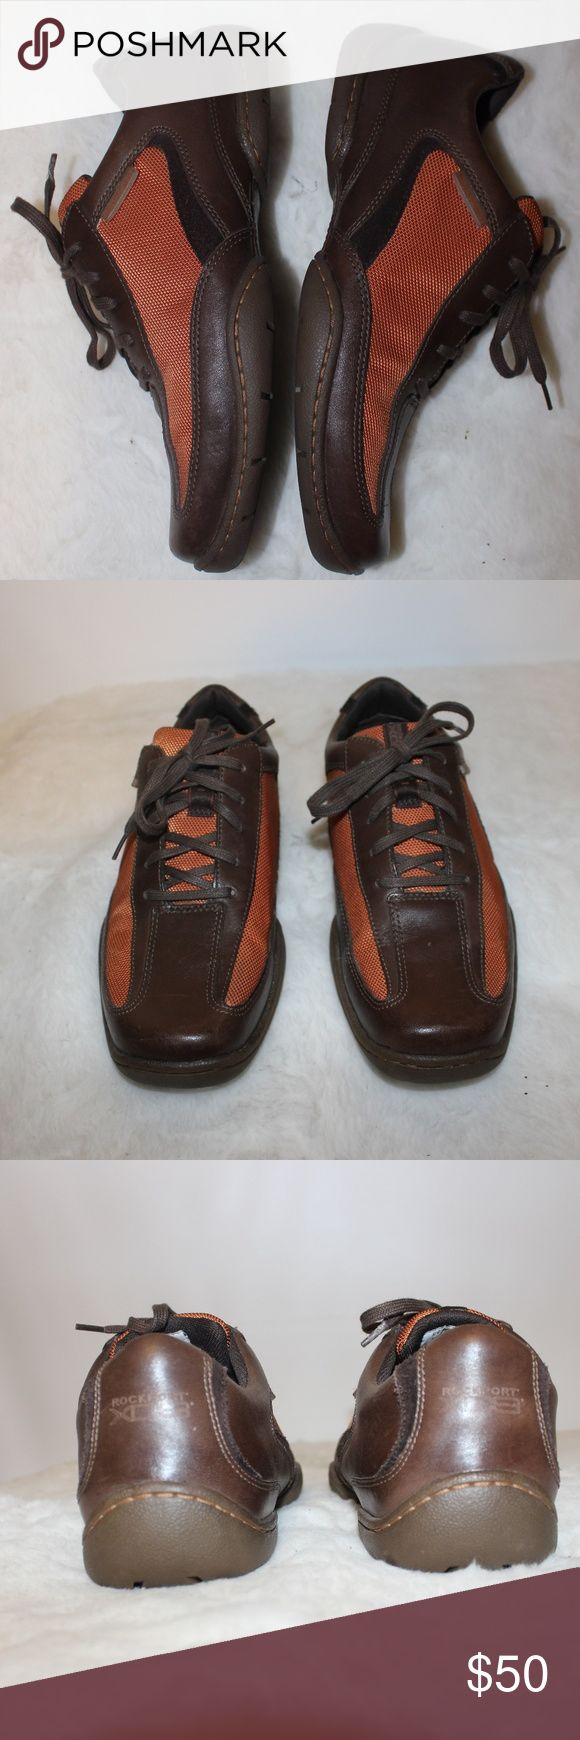 Rockport Shoes Gently worn and still in GREAT shape. They are orange and Brown. Make an offer or BUNDLE for BIG SAVINGS! Rockport Shoes